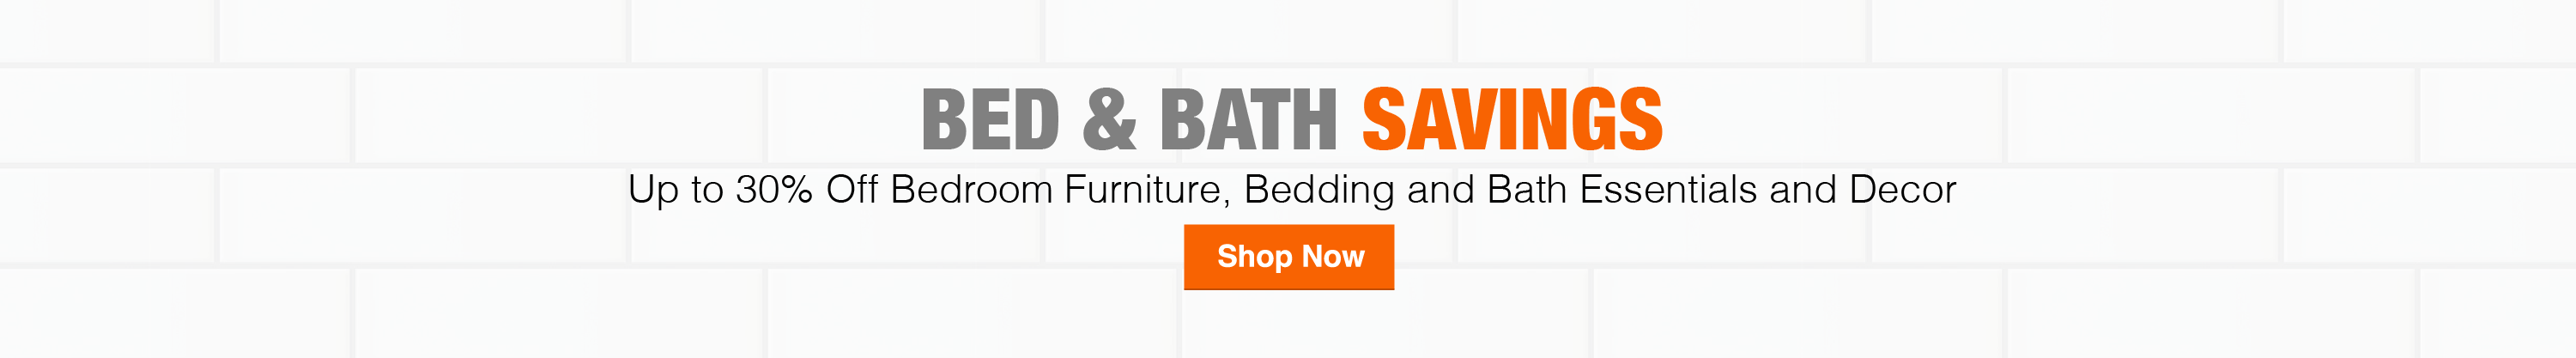 Bed & Bath Savings Up to 30% Off Select